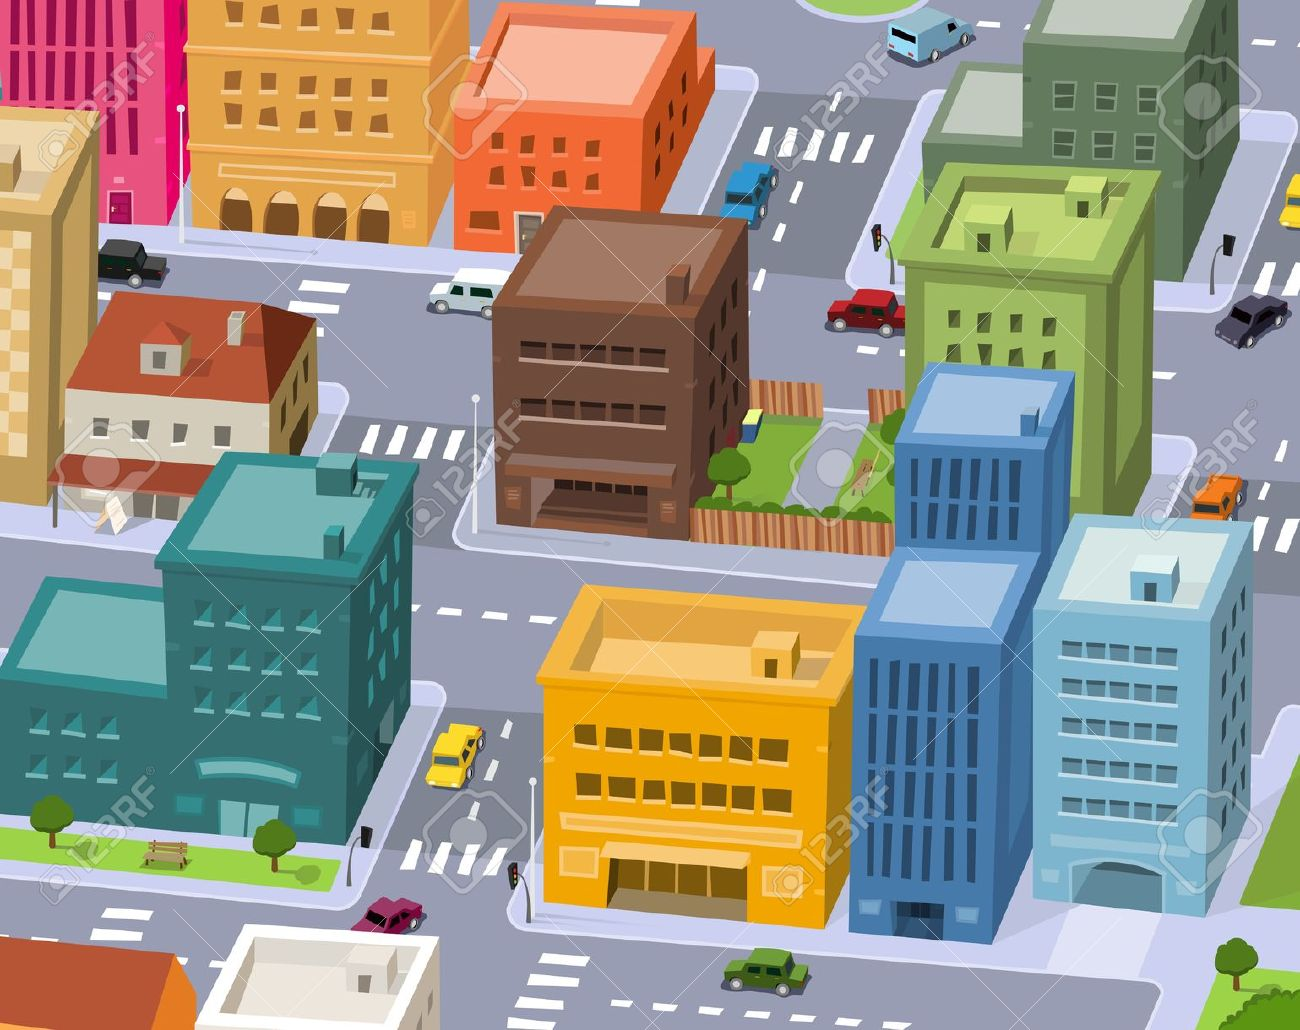 Illustration Of A Cartoon City Scene, With Aerial View Of Downtown.